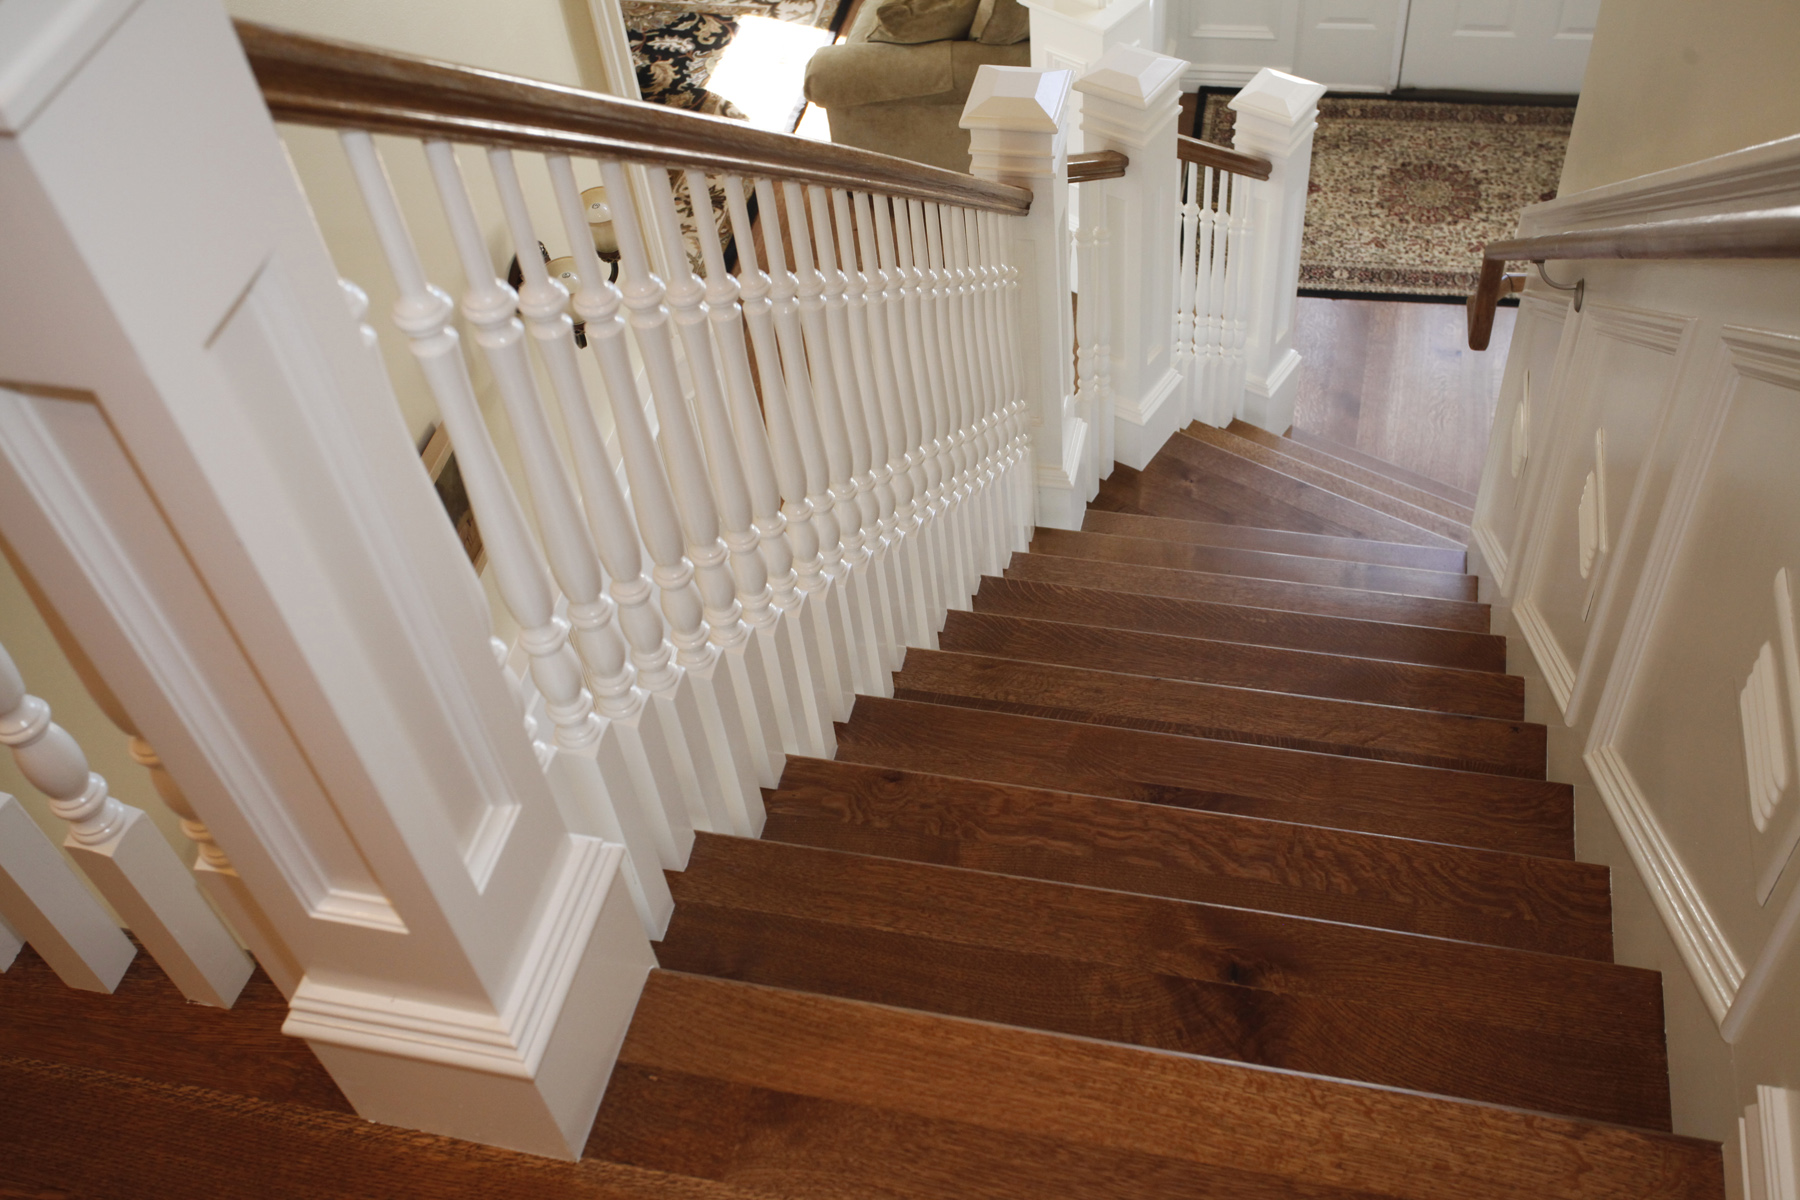 Double Smoked Oak Stairs 1024x678; Hardwood Floor Stairs1